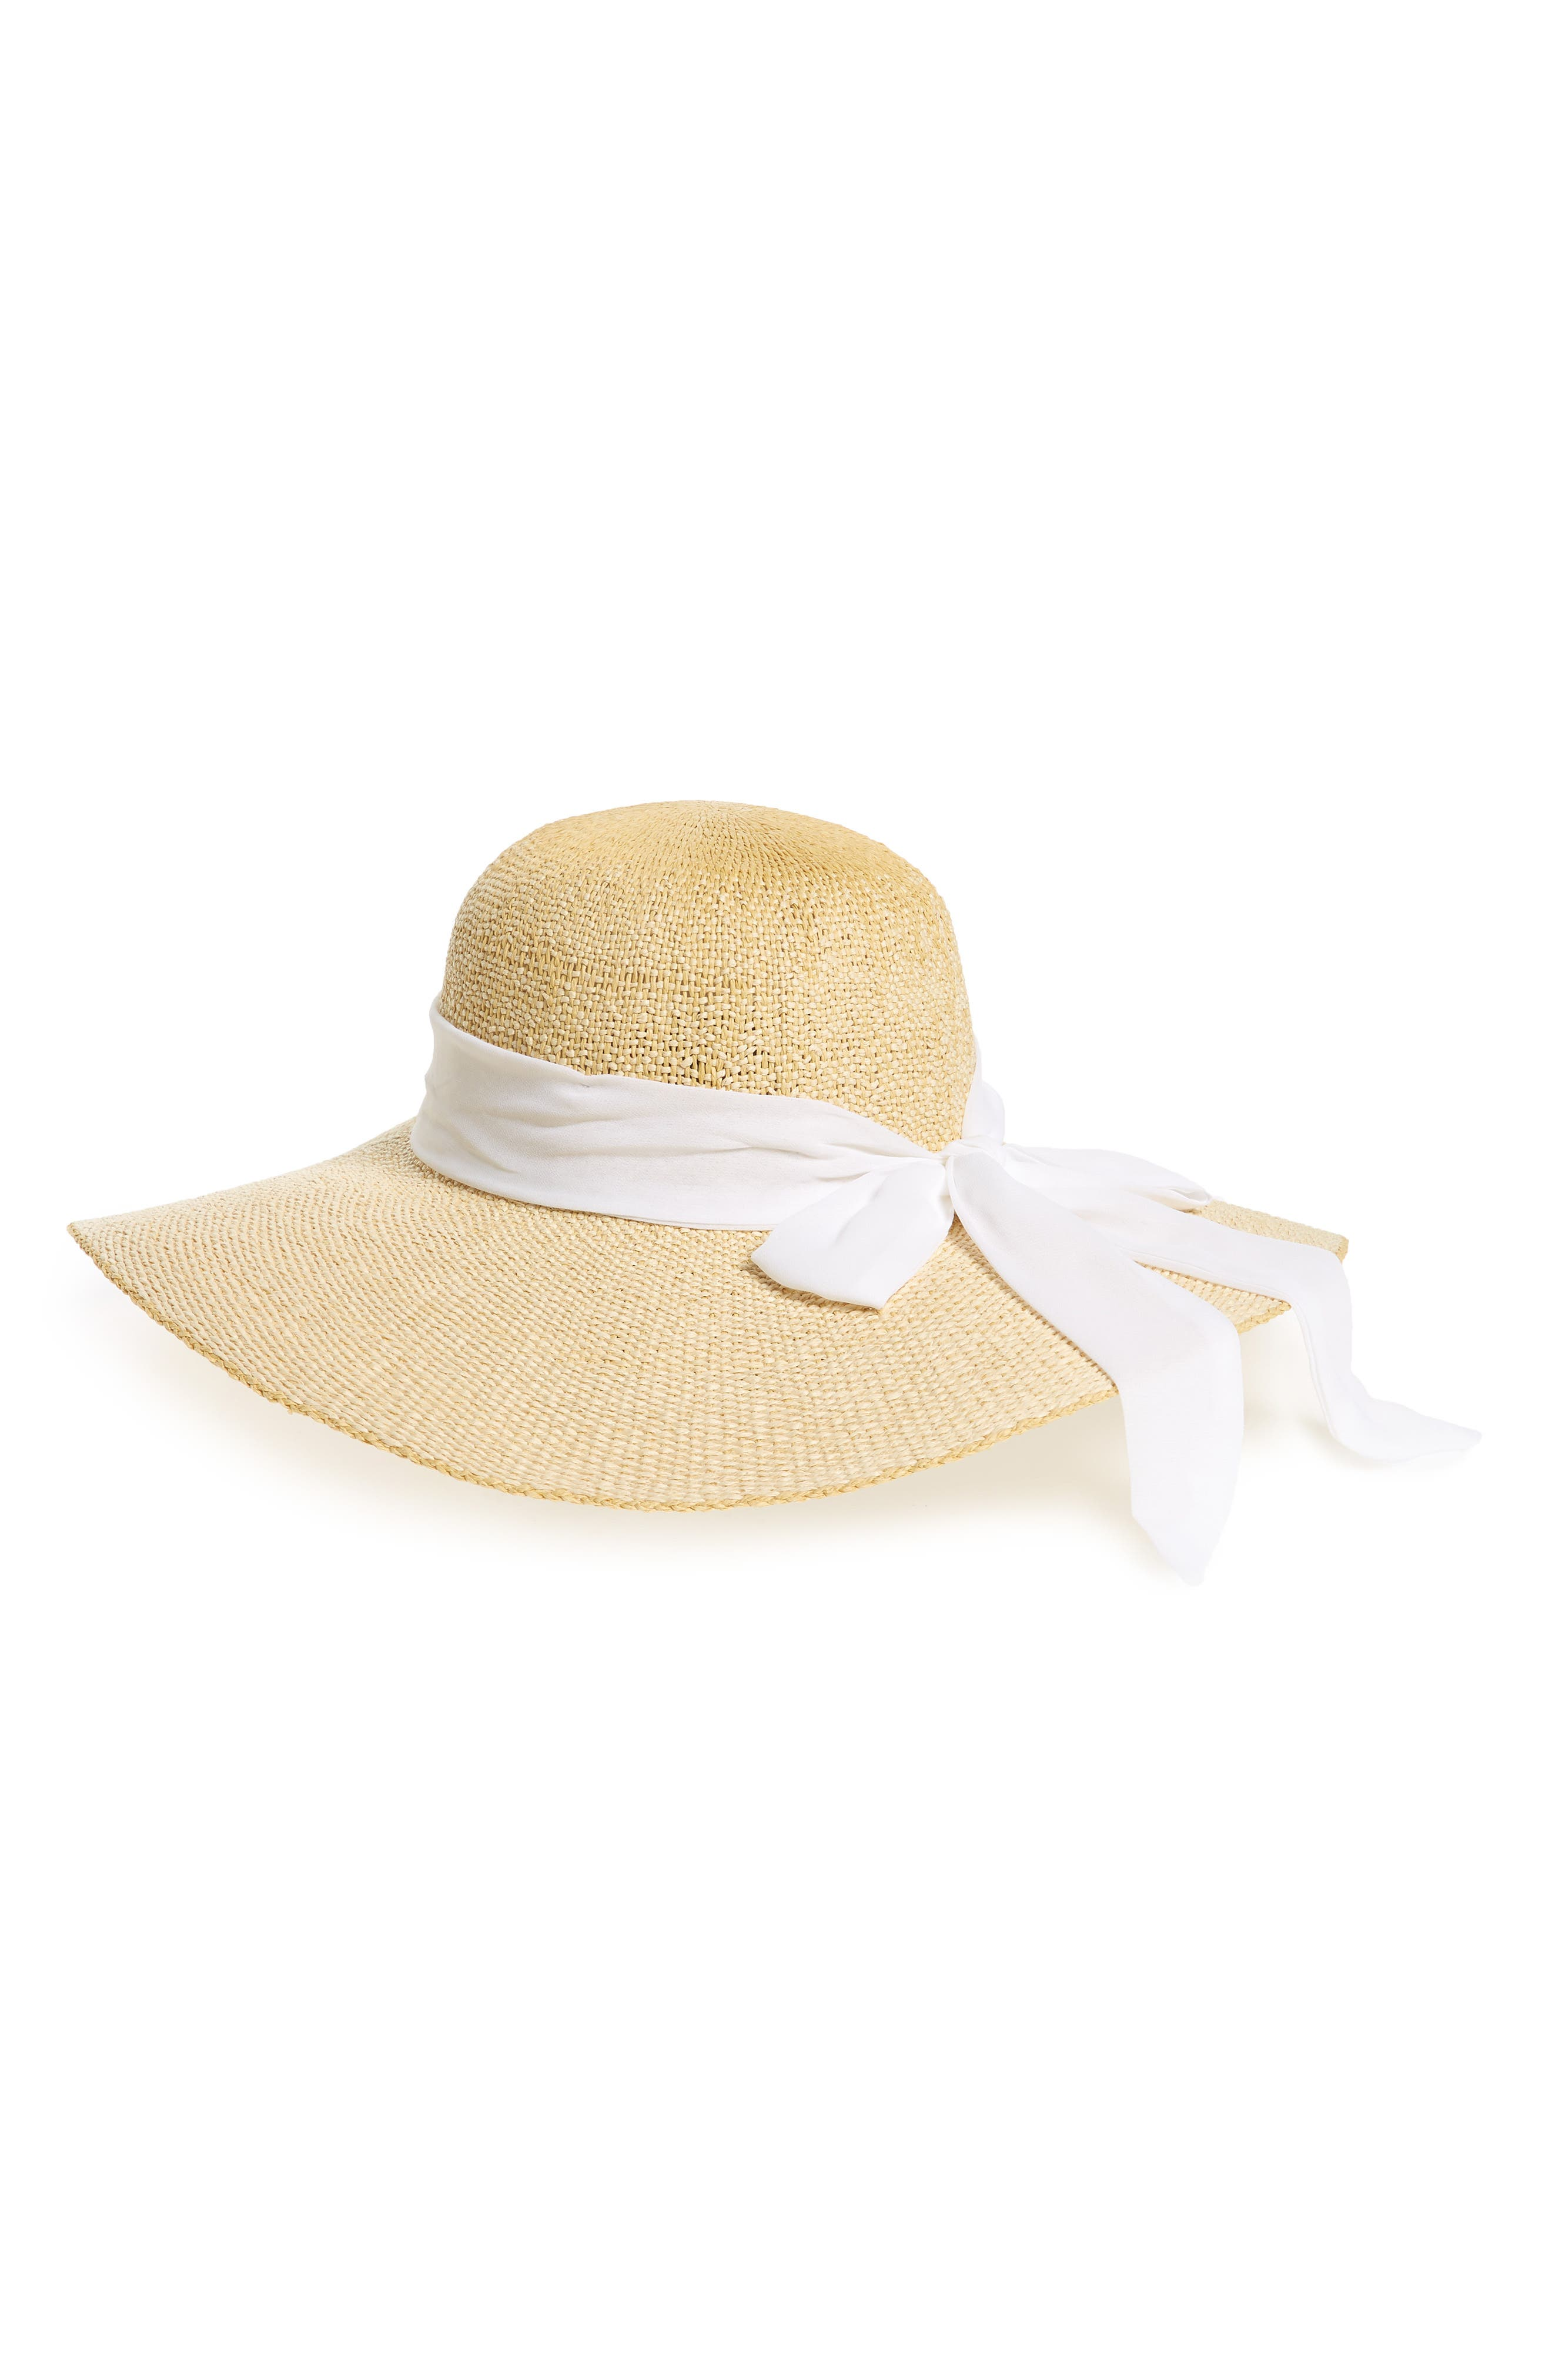 Bow Scarf Straw Floppy Hat,                         Main,                         color, 108